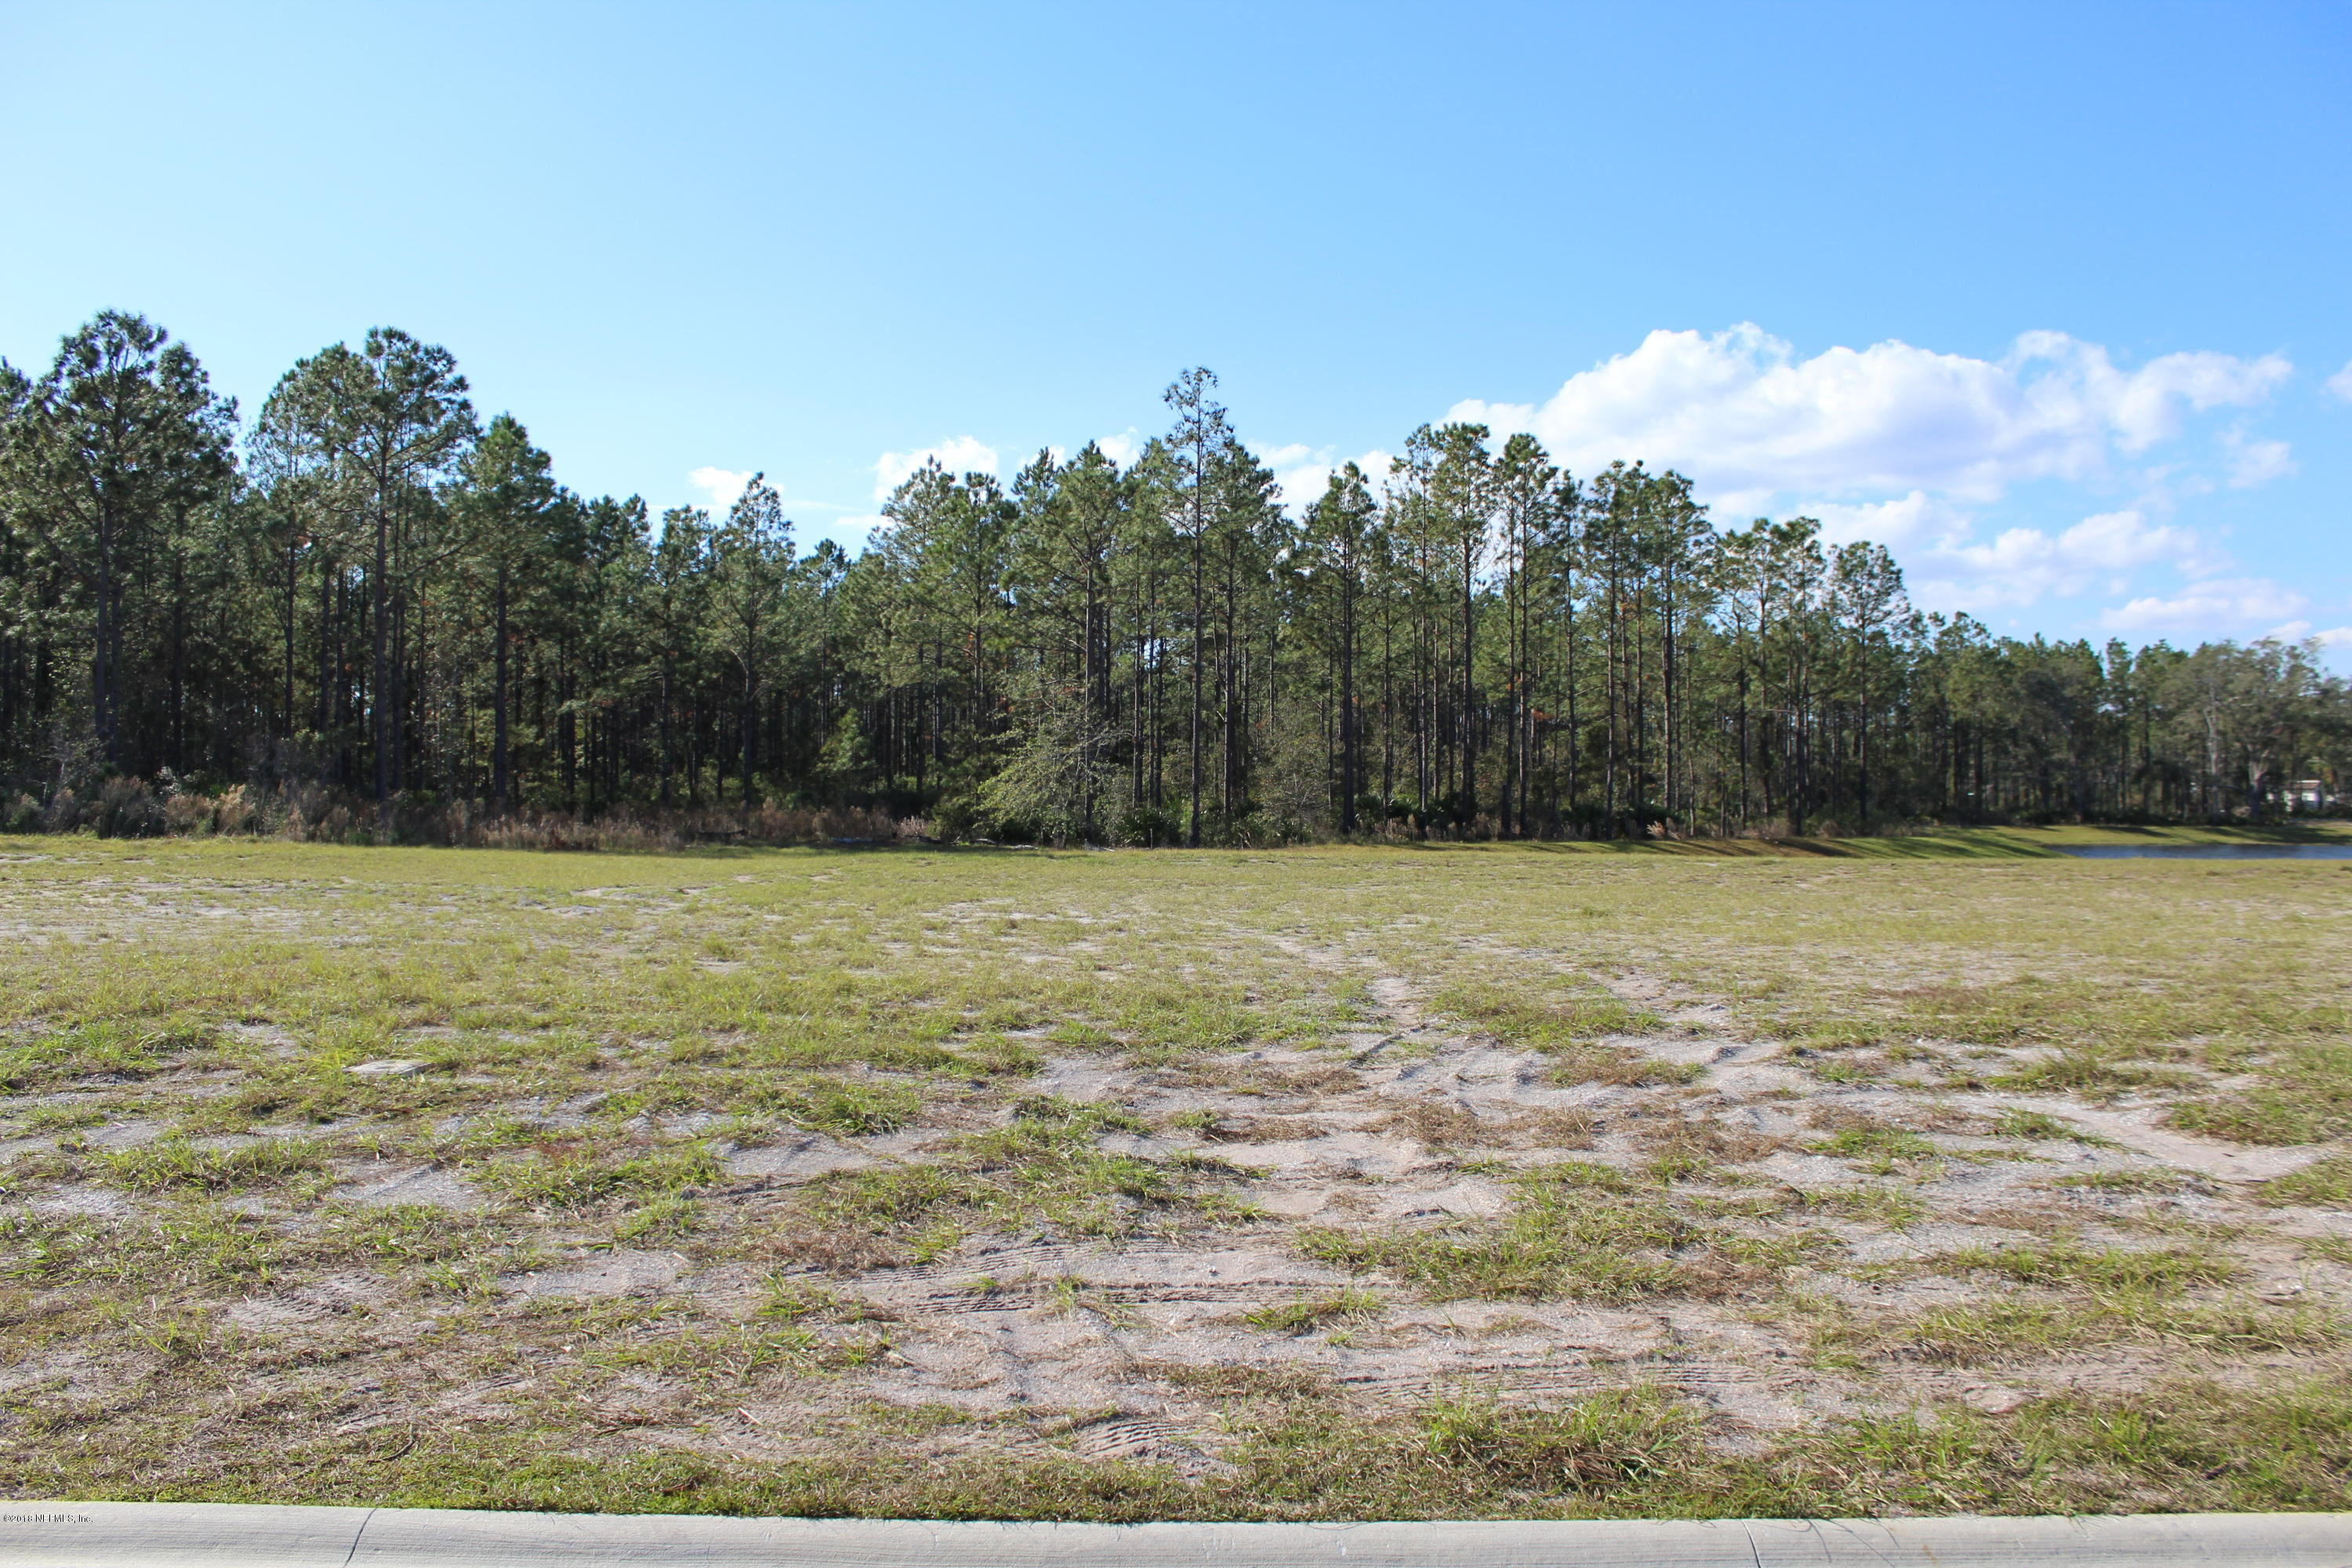 296 WILDERNESS RIDGE, PONTE VEDRA, FLORIDA 32081, ,Vacant land,For sale,WILDERNESS RIDGE,917784